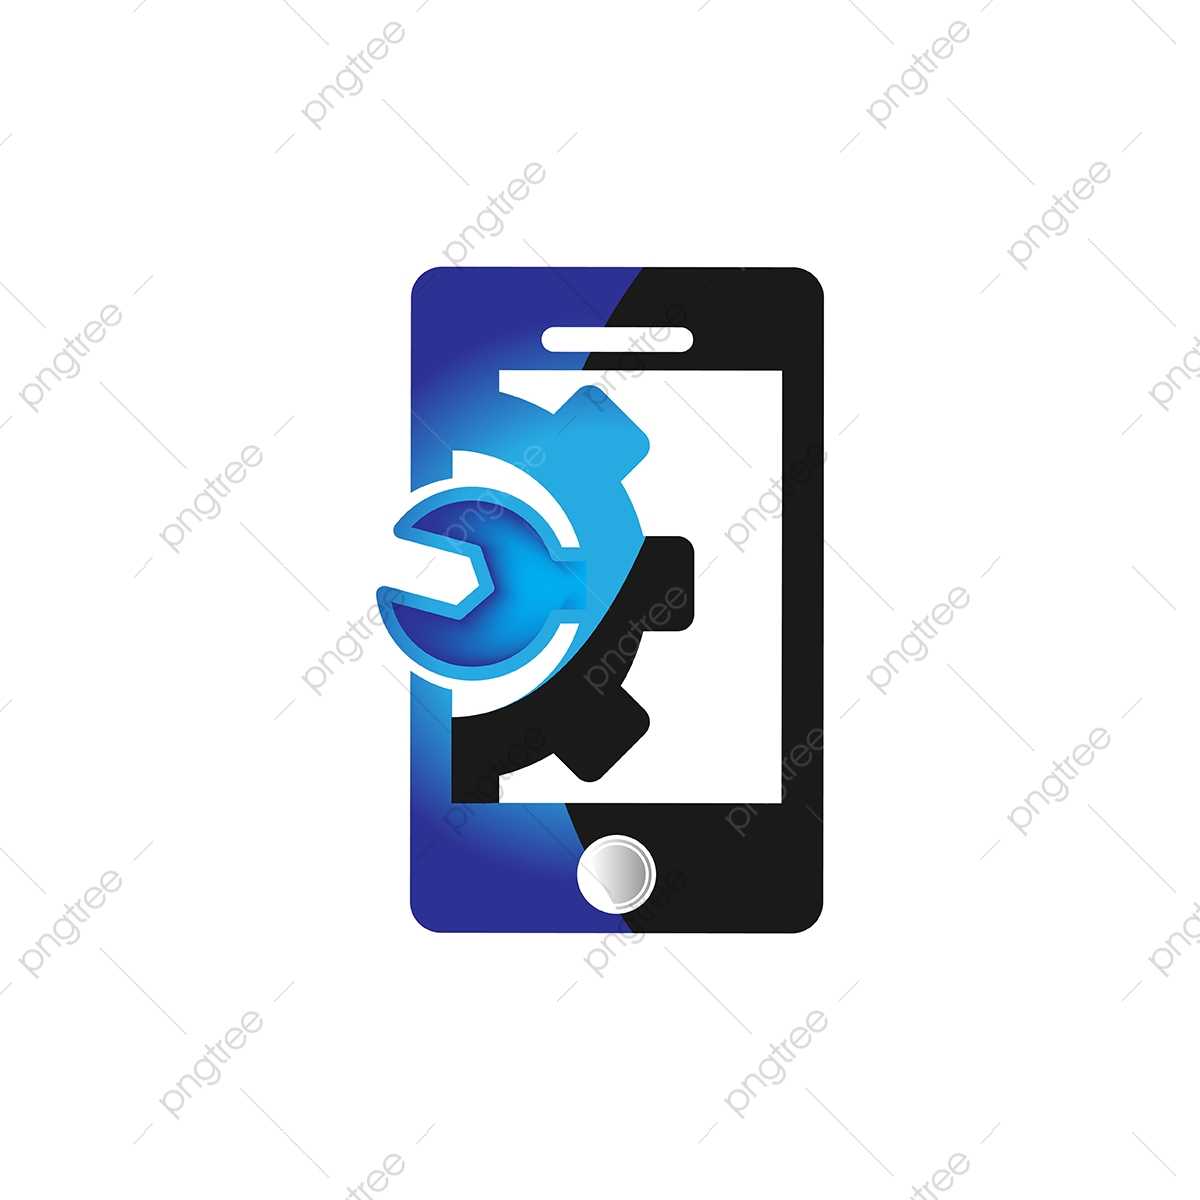 Repair Phone Logo Design Inspiration Phone Icons Logo Icons Inspiration Icons Png And Vector With Transparent Background For Free Download